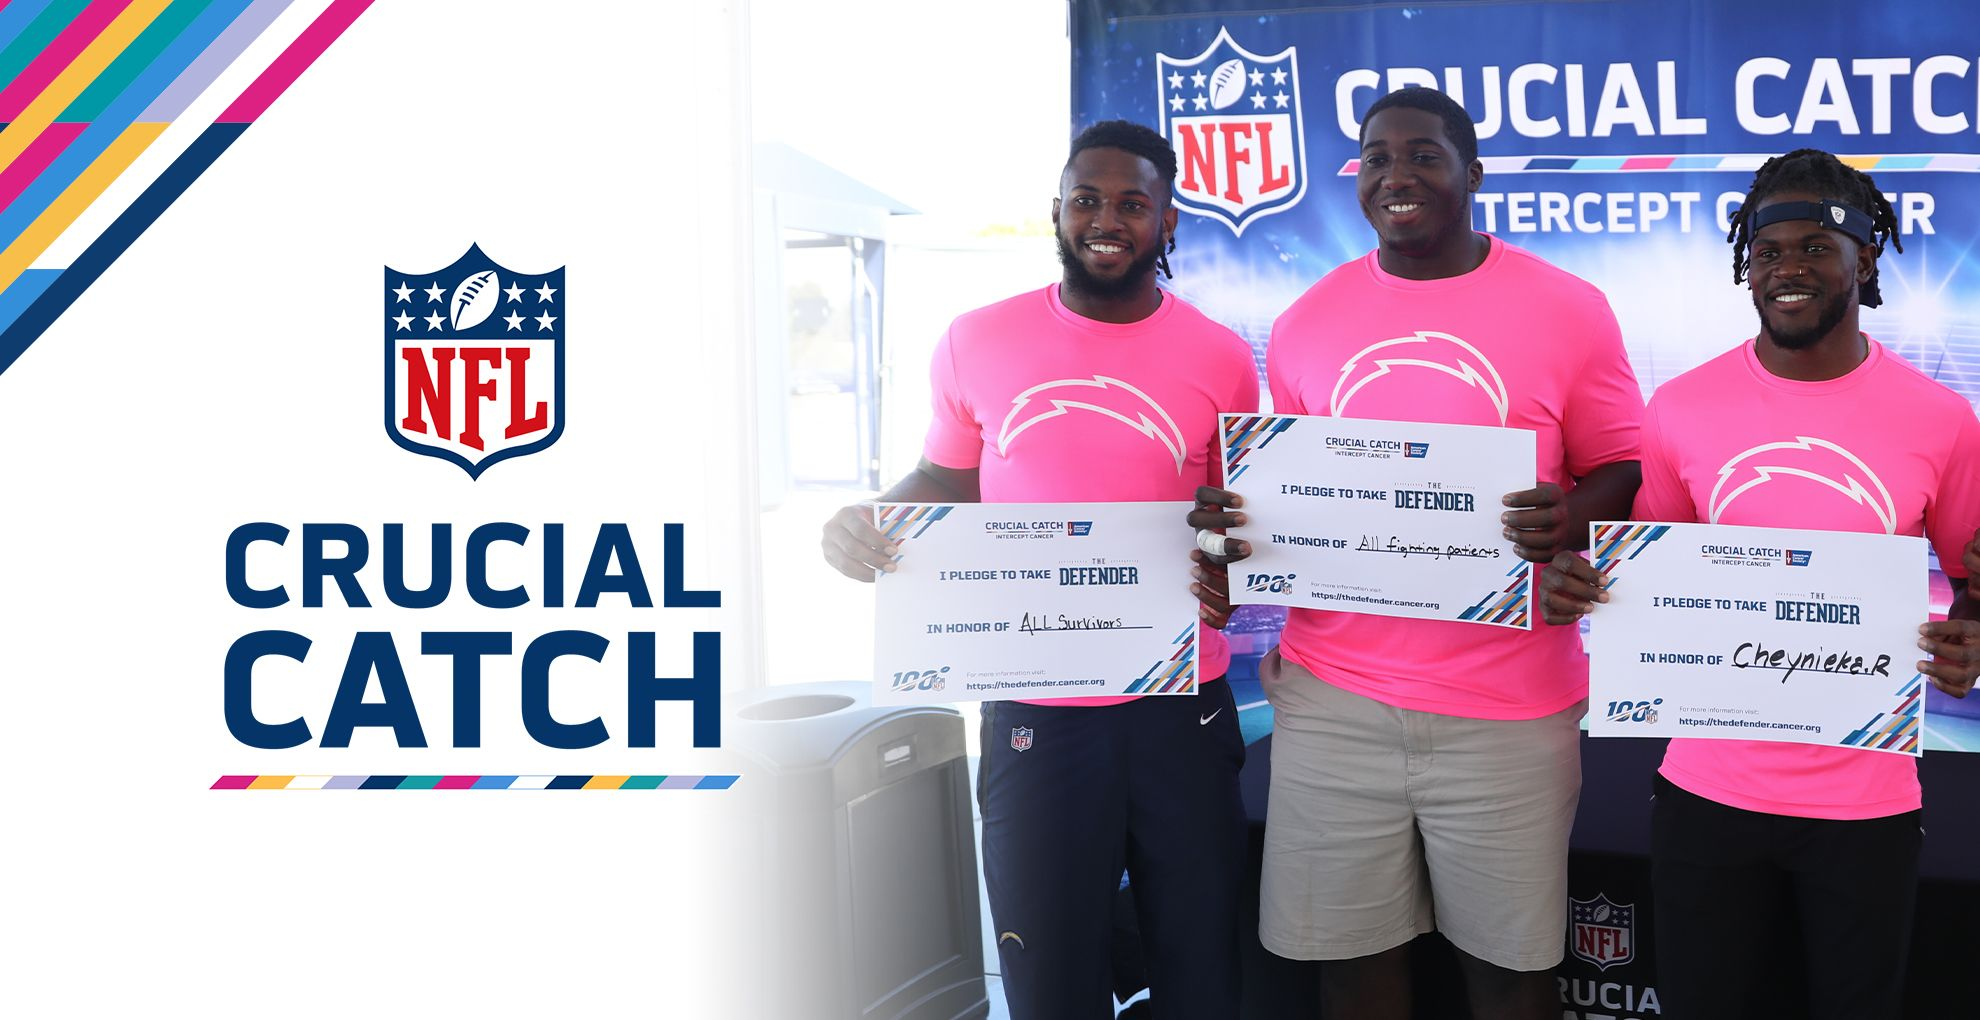 The NFL and the American Cancer Society know that when it comes to cancer, the best defense is a good offense. October is Crucial Catch month and we want you to join the fight against cancer. Learn more about early detection, risk reduction, and how to get screened today.